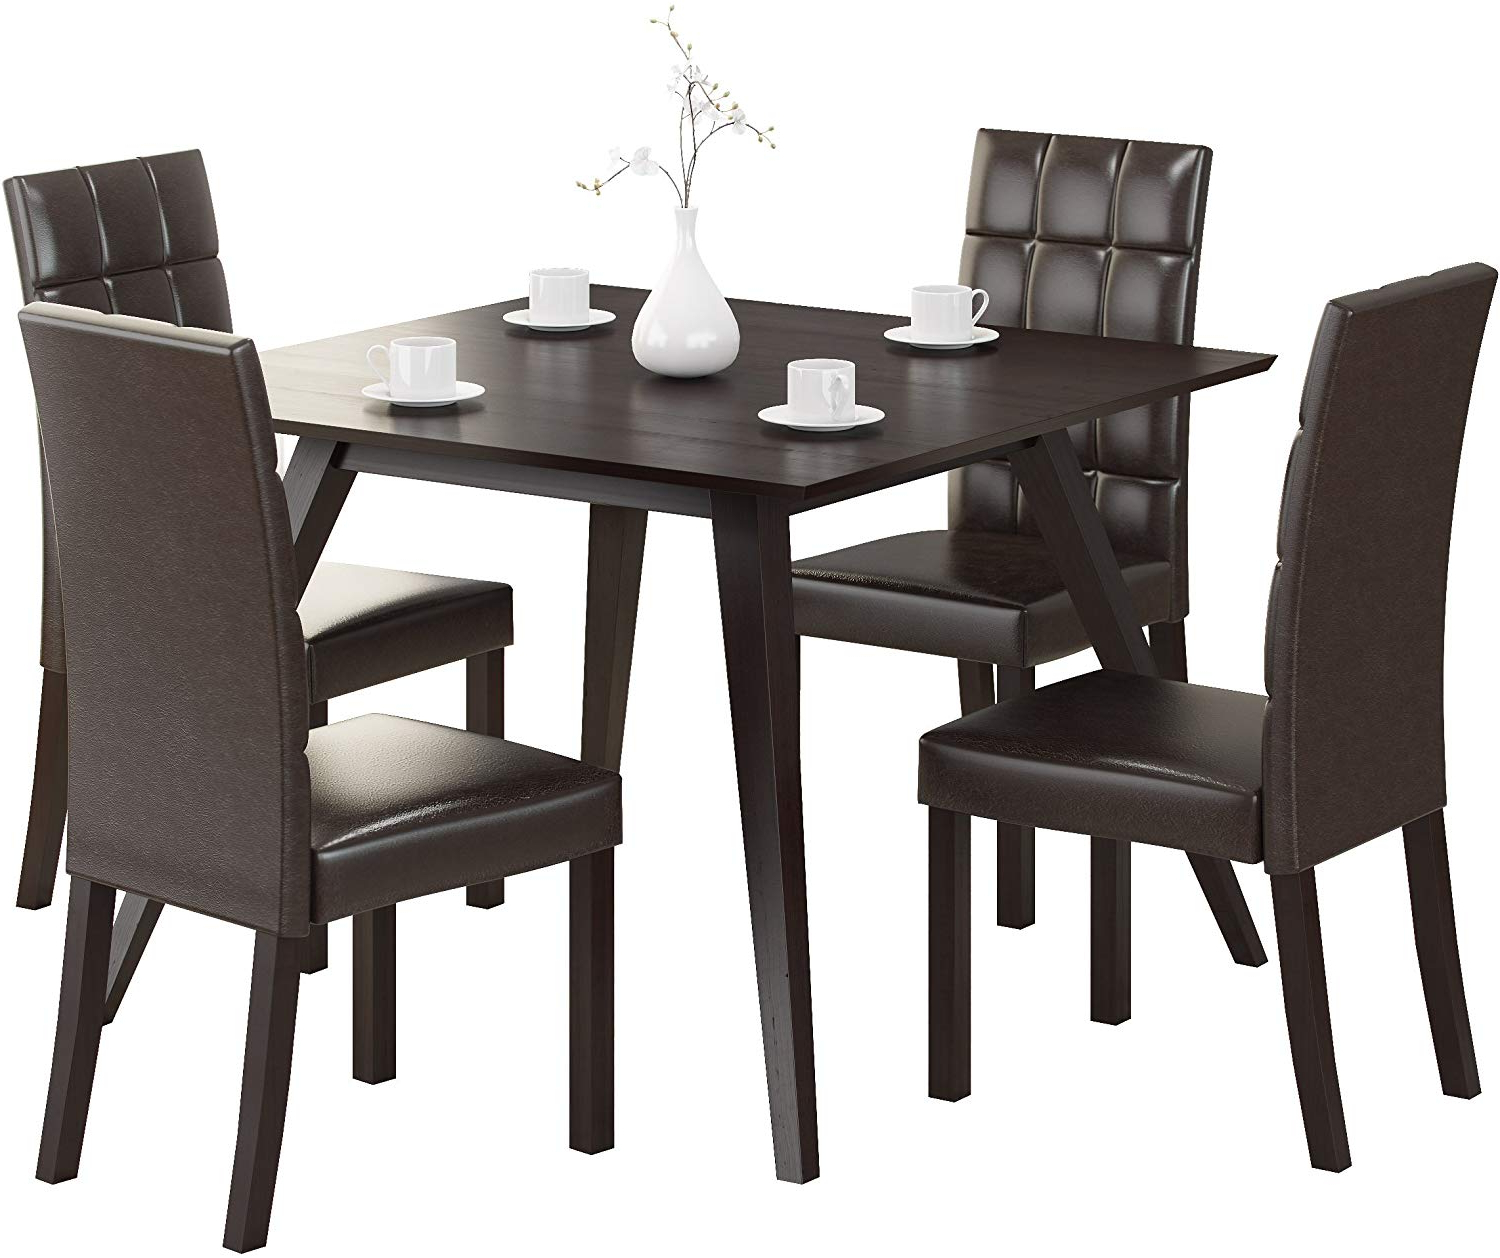 Recent Corliving Atwood Dining Set, Dark Brown Intended For Atwood Transitional Square Dining Tables (View 22 of 25)